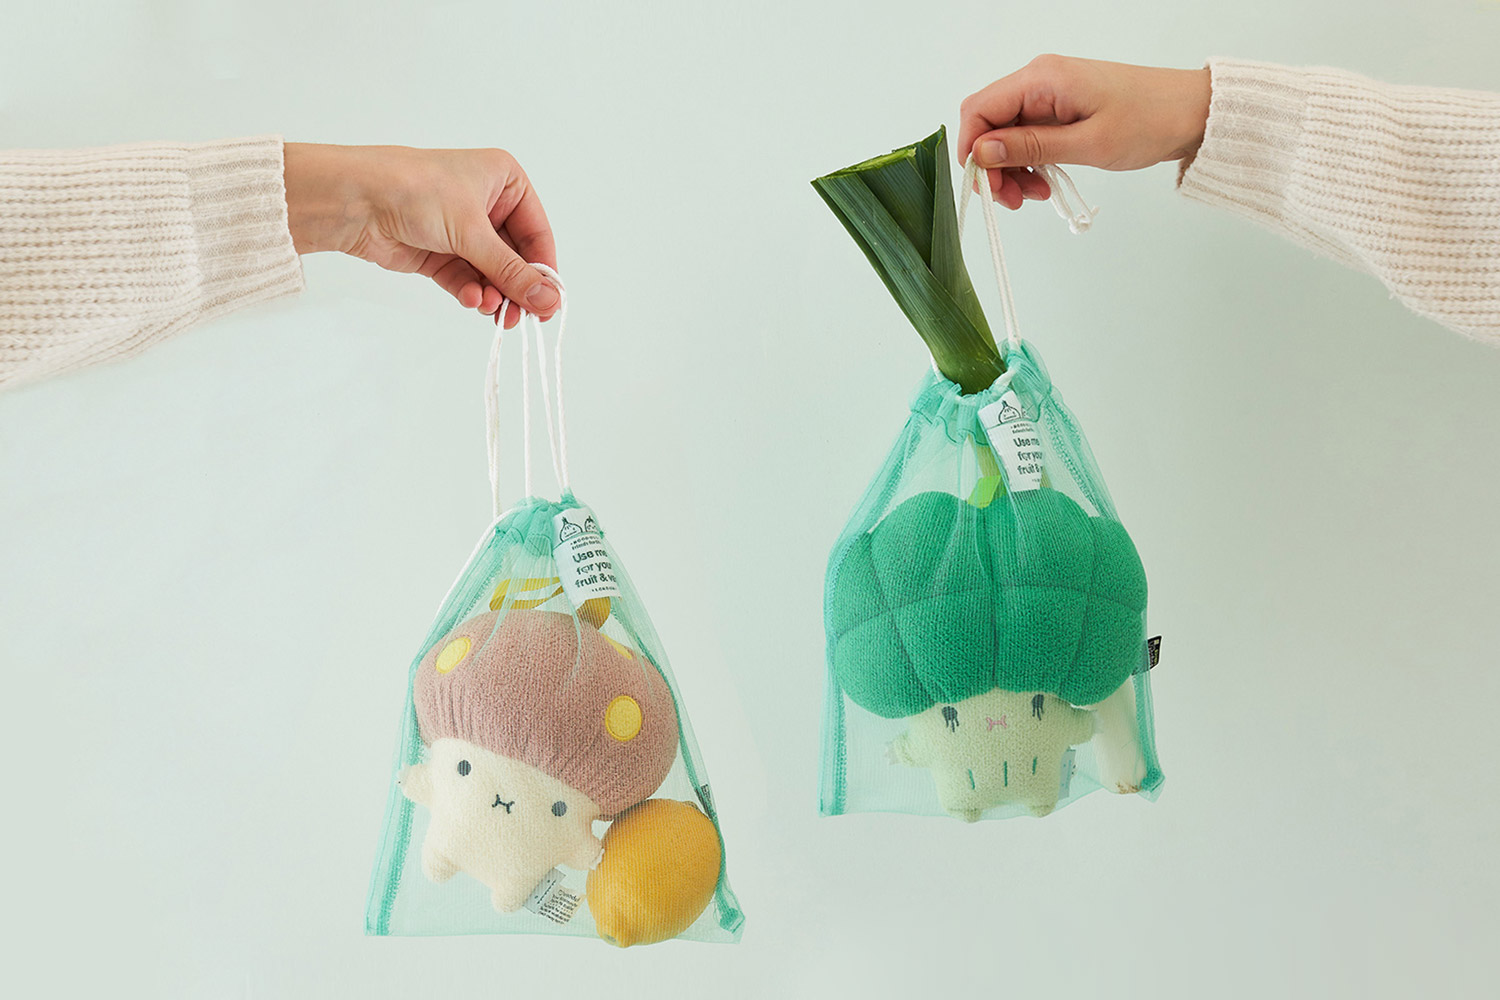 Exclusive: Free grocery bags